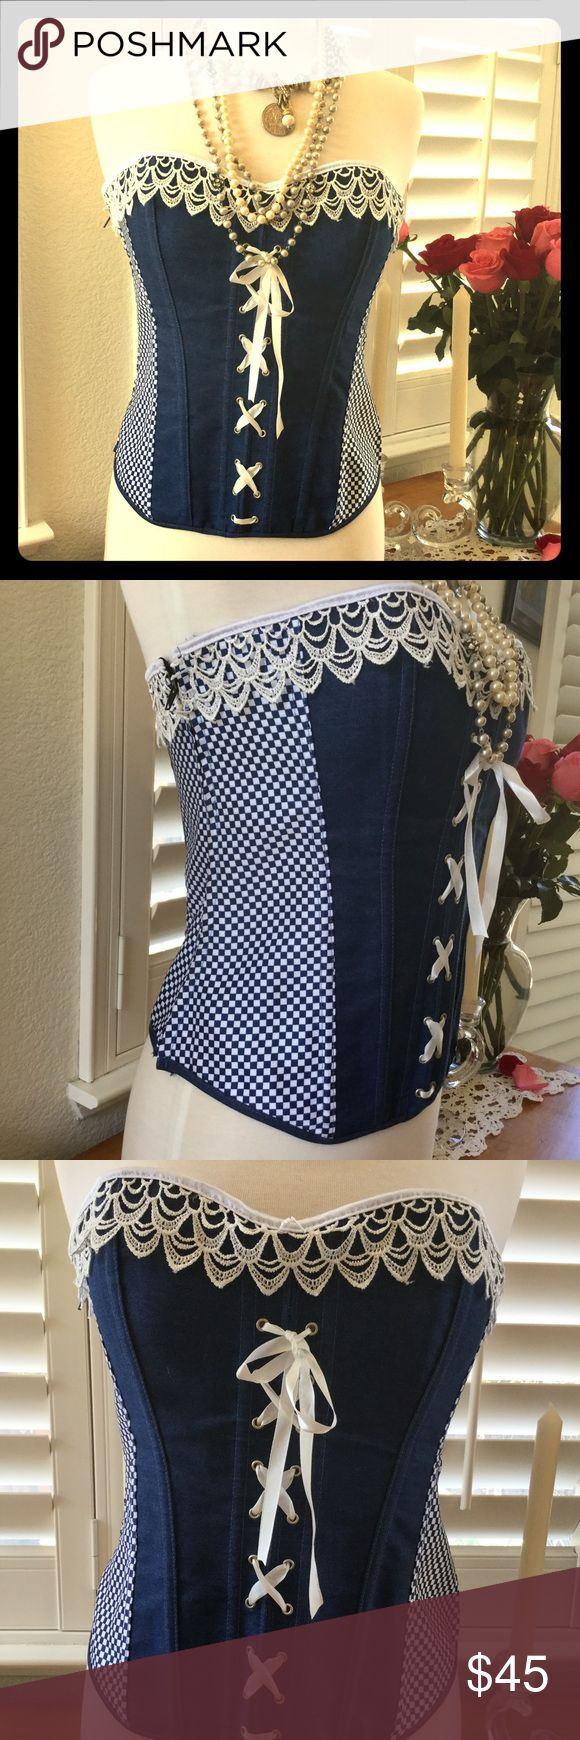 Flirty Lace and Denim and Summery Corset Sweet 3 inch lace detailing with denim zip up side and lace up back. Flattering to all figures from M-XXL! New Tops Camisoles